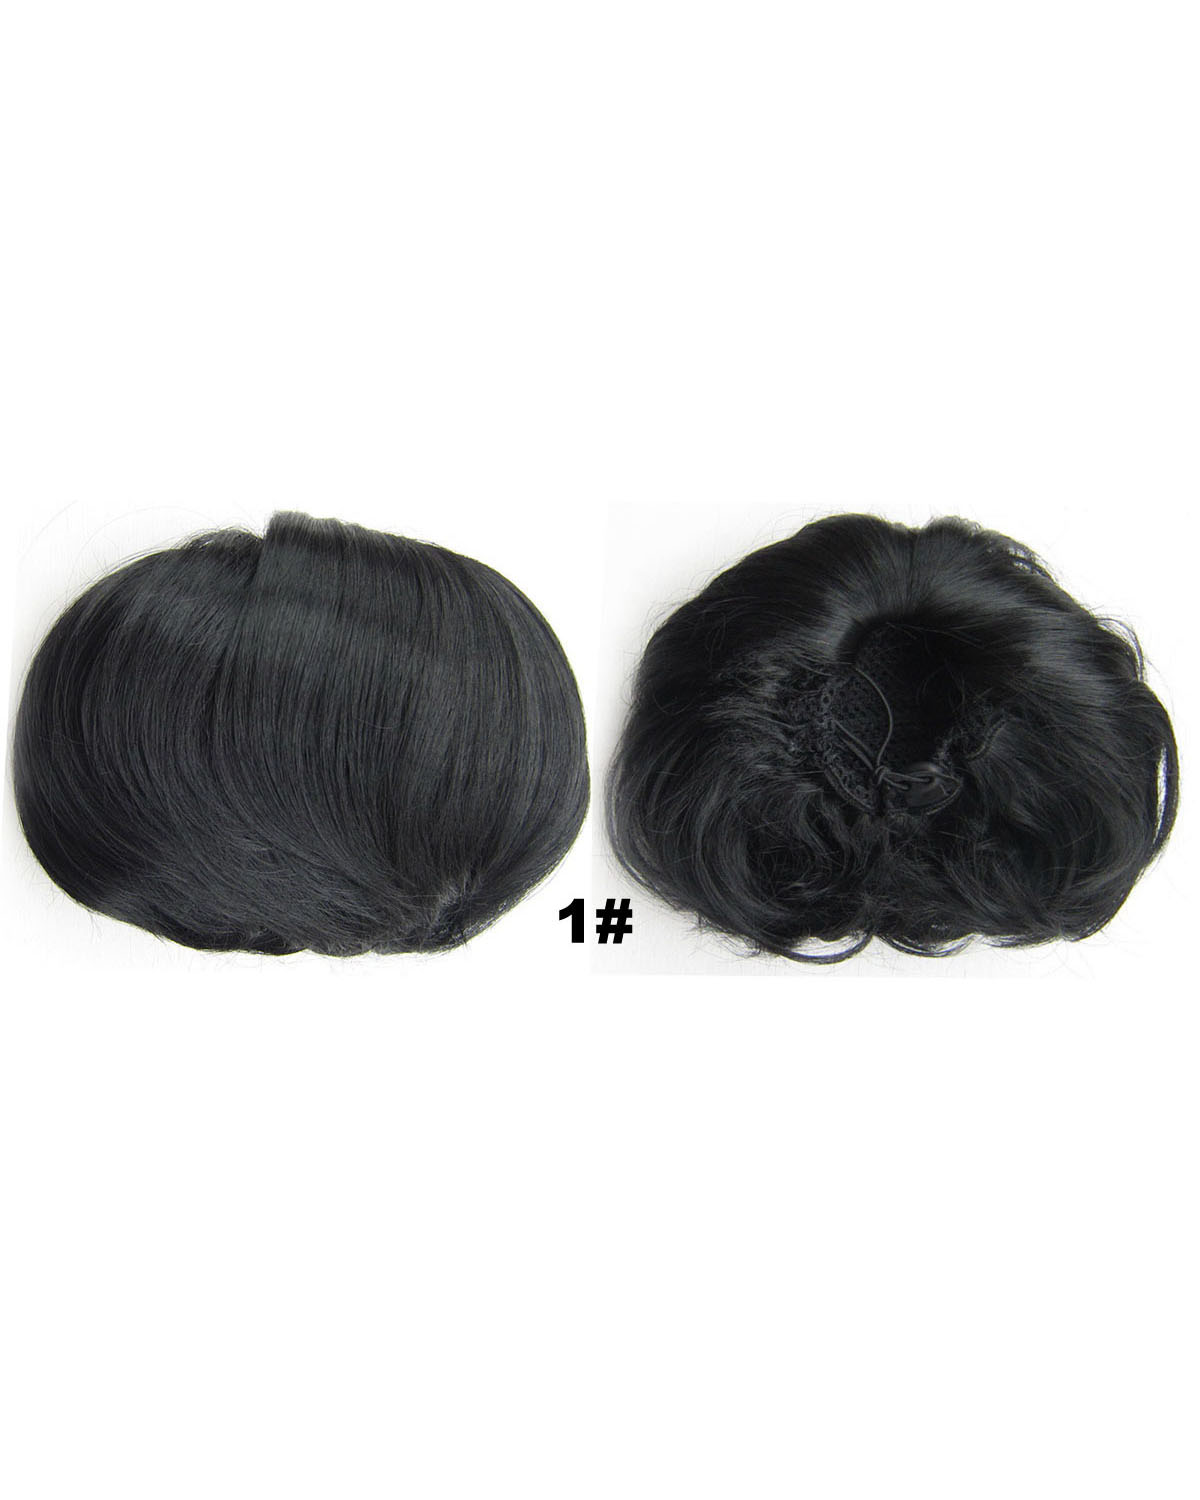 Ladies Salable Straight Short Hair Buns Drawstring Synthetic Hair Extension Bride Scrunchies 1#